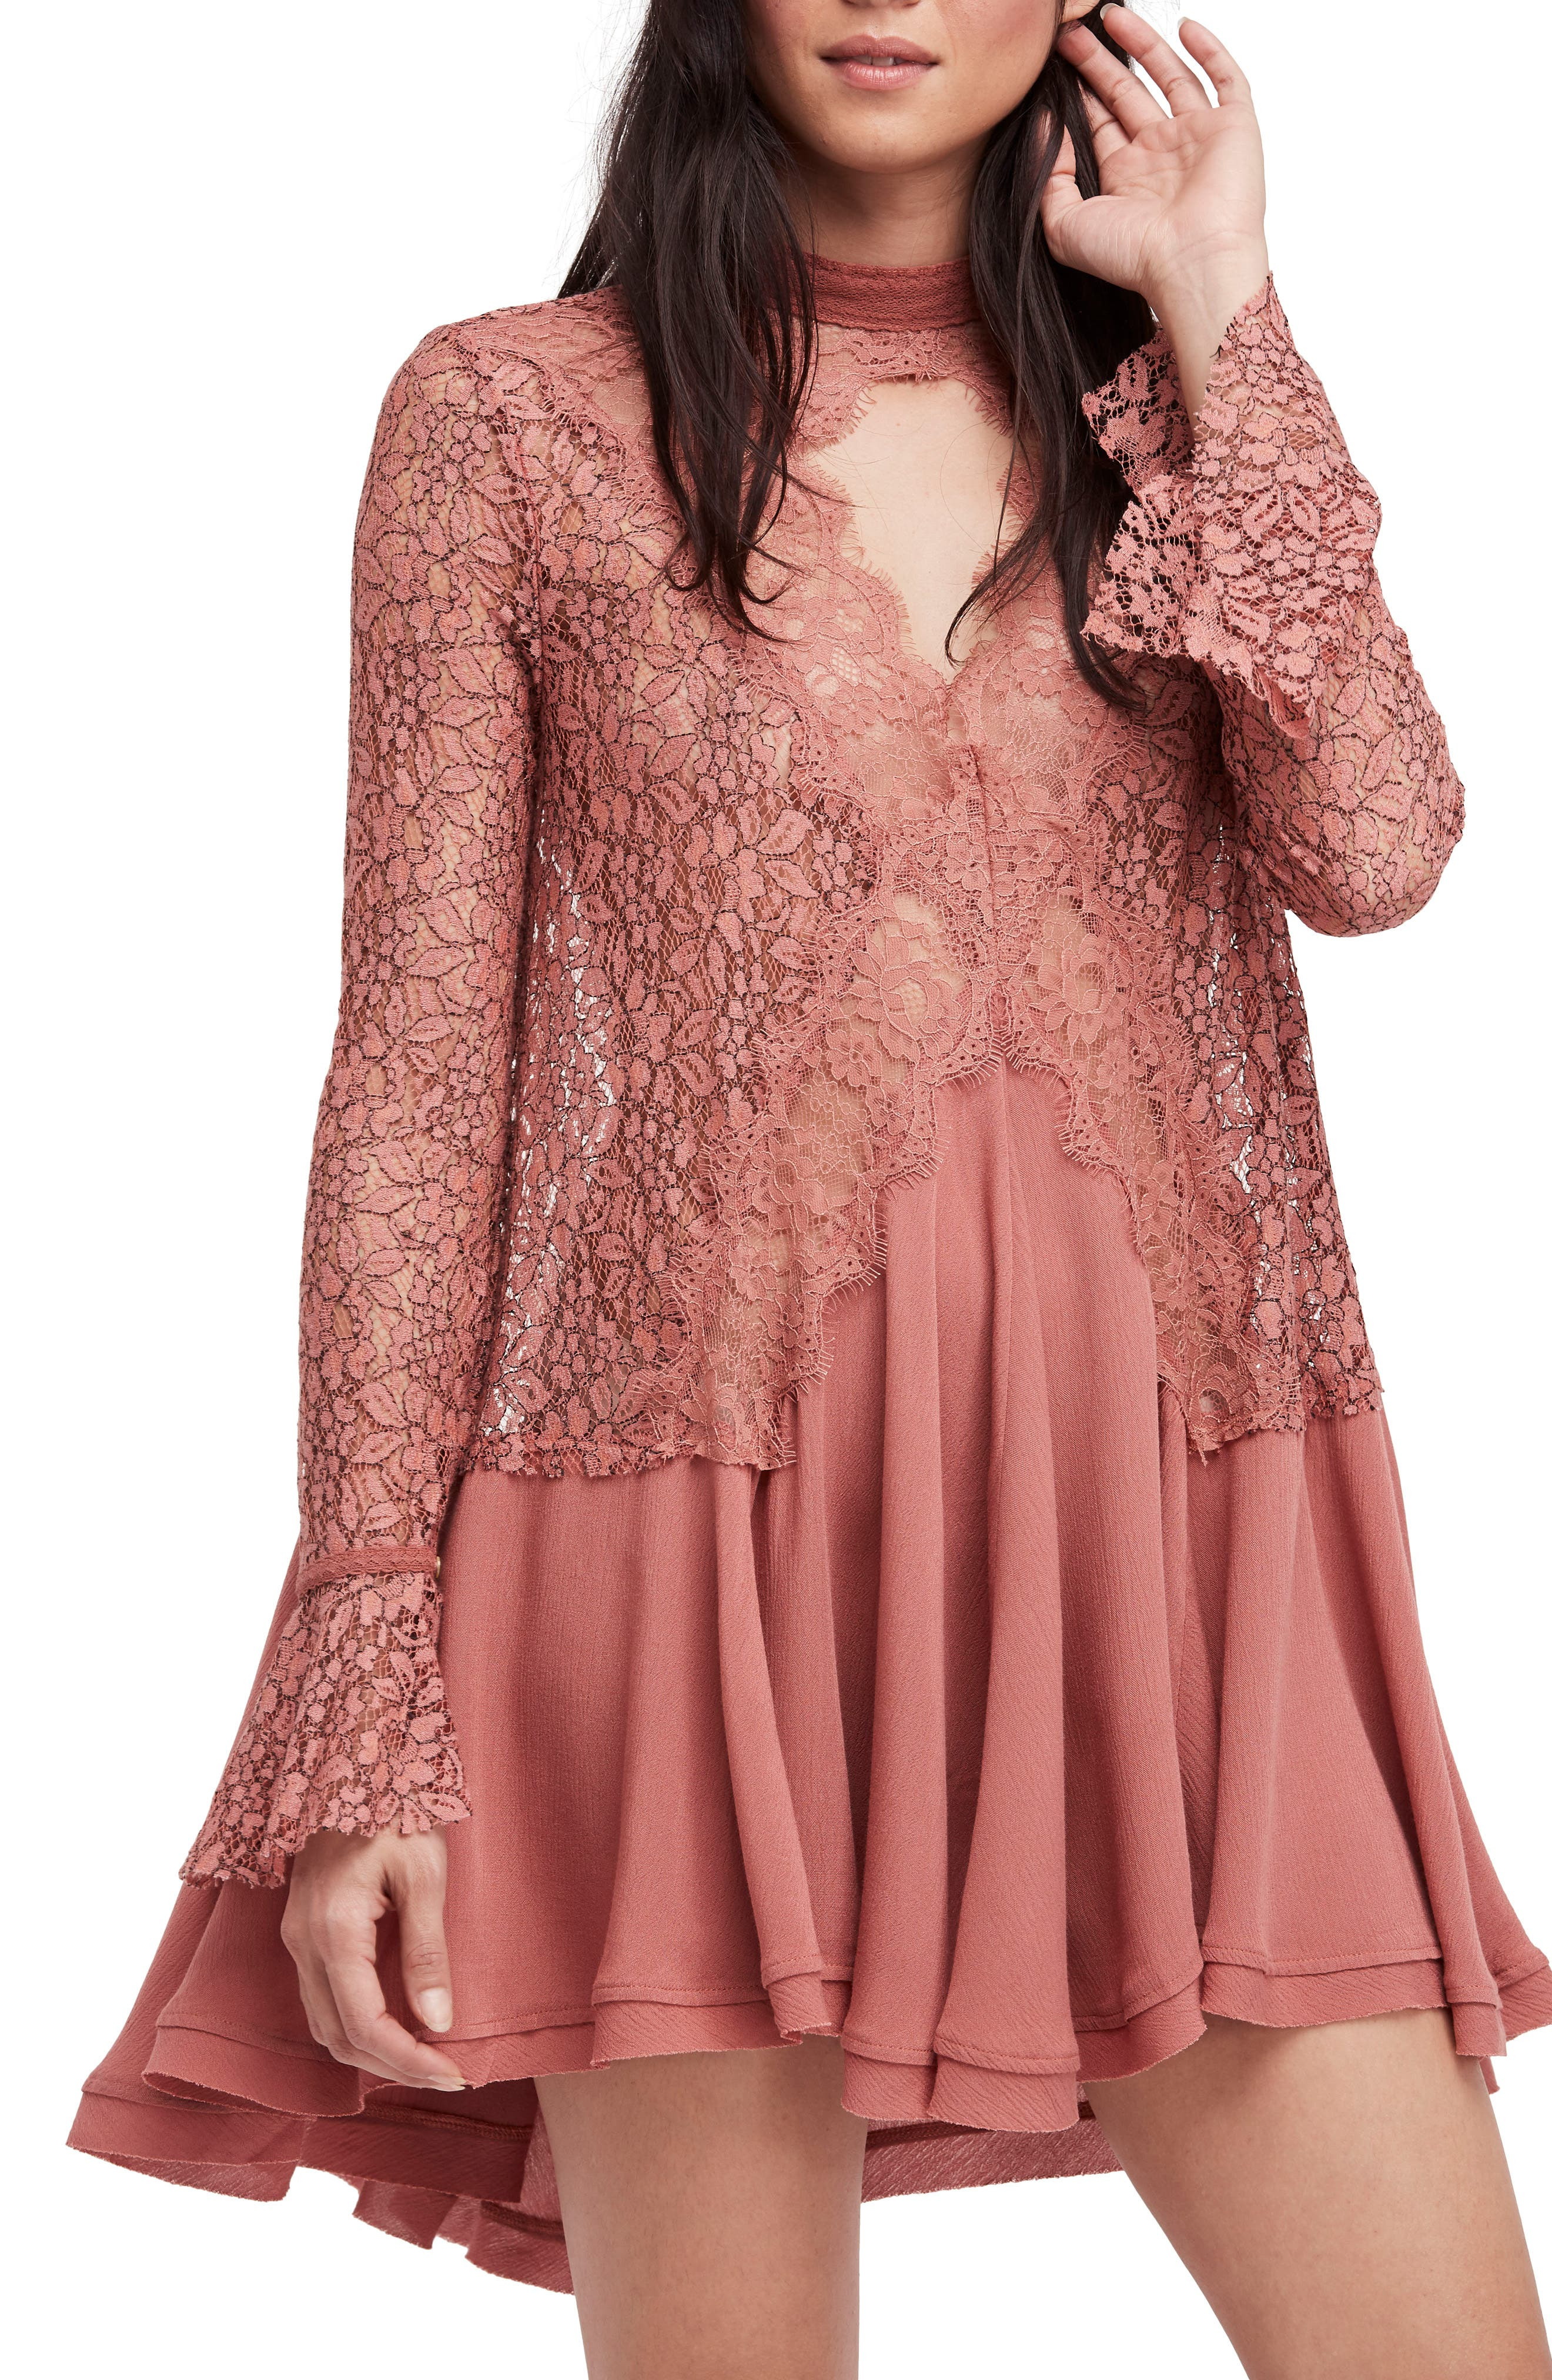 FREE PEOPLE,                             New Tell Tale Lace Minidress,                             Main thumbnail 1, color,                             605